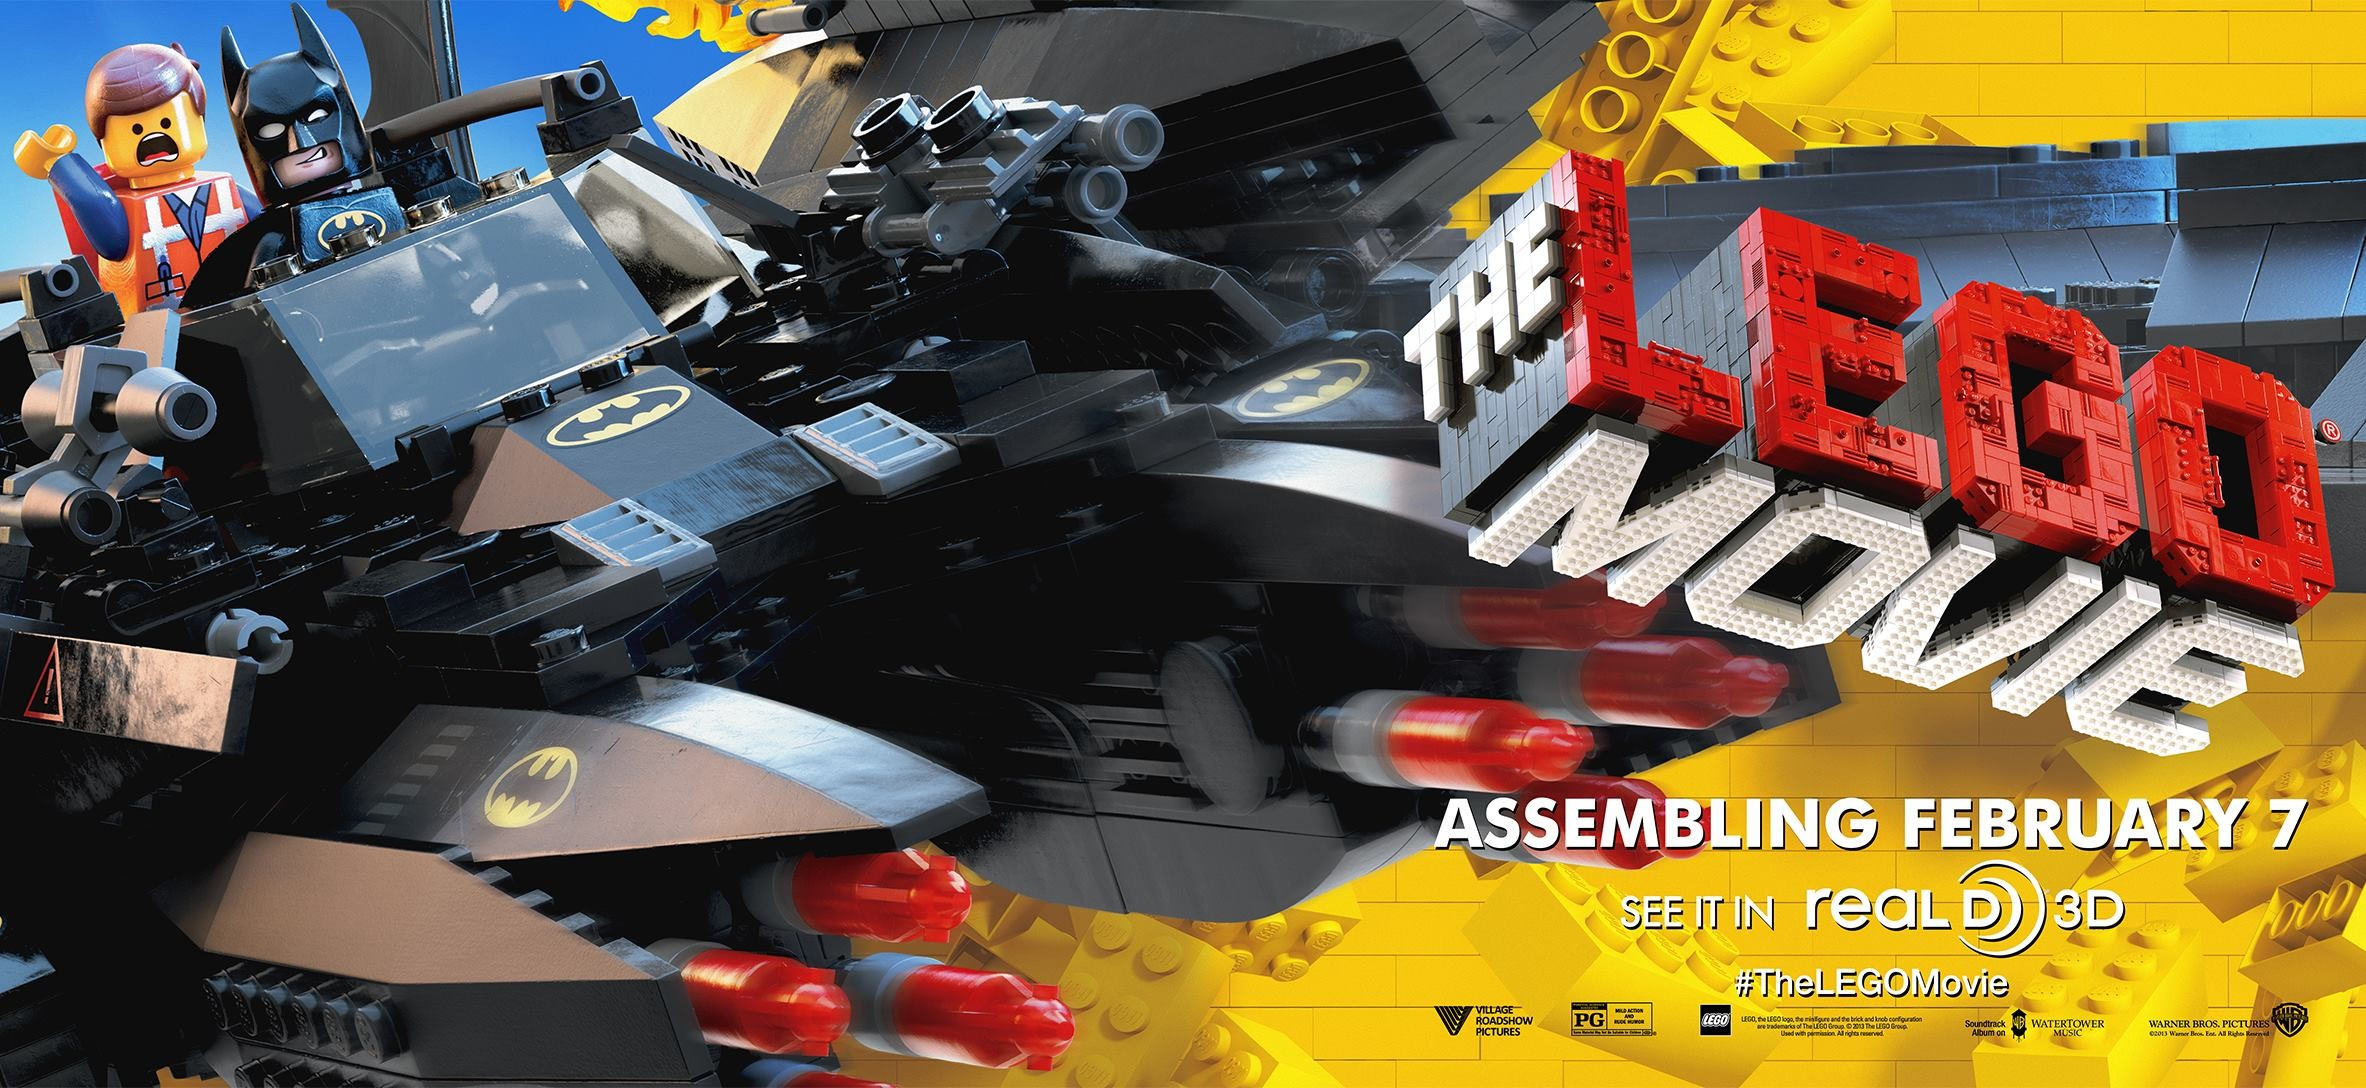 The Lego Movie-Official Poster Banner PROMO POSTER XXLG-06DEZEMBRO2013